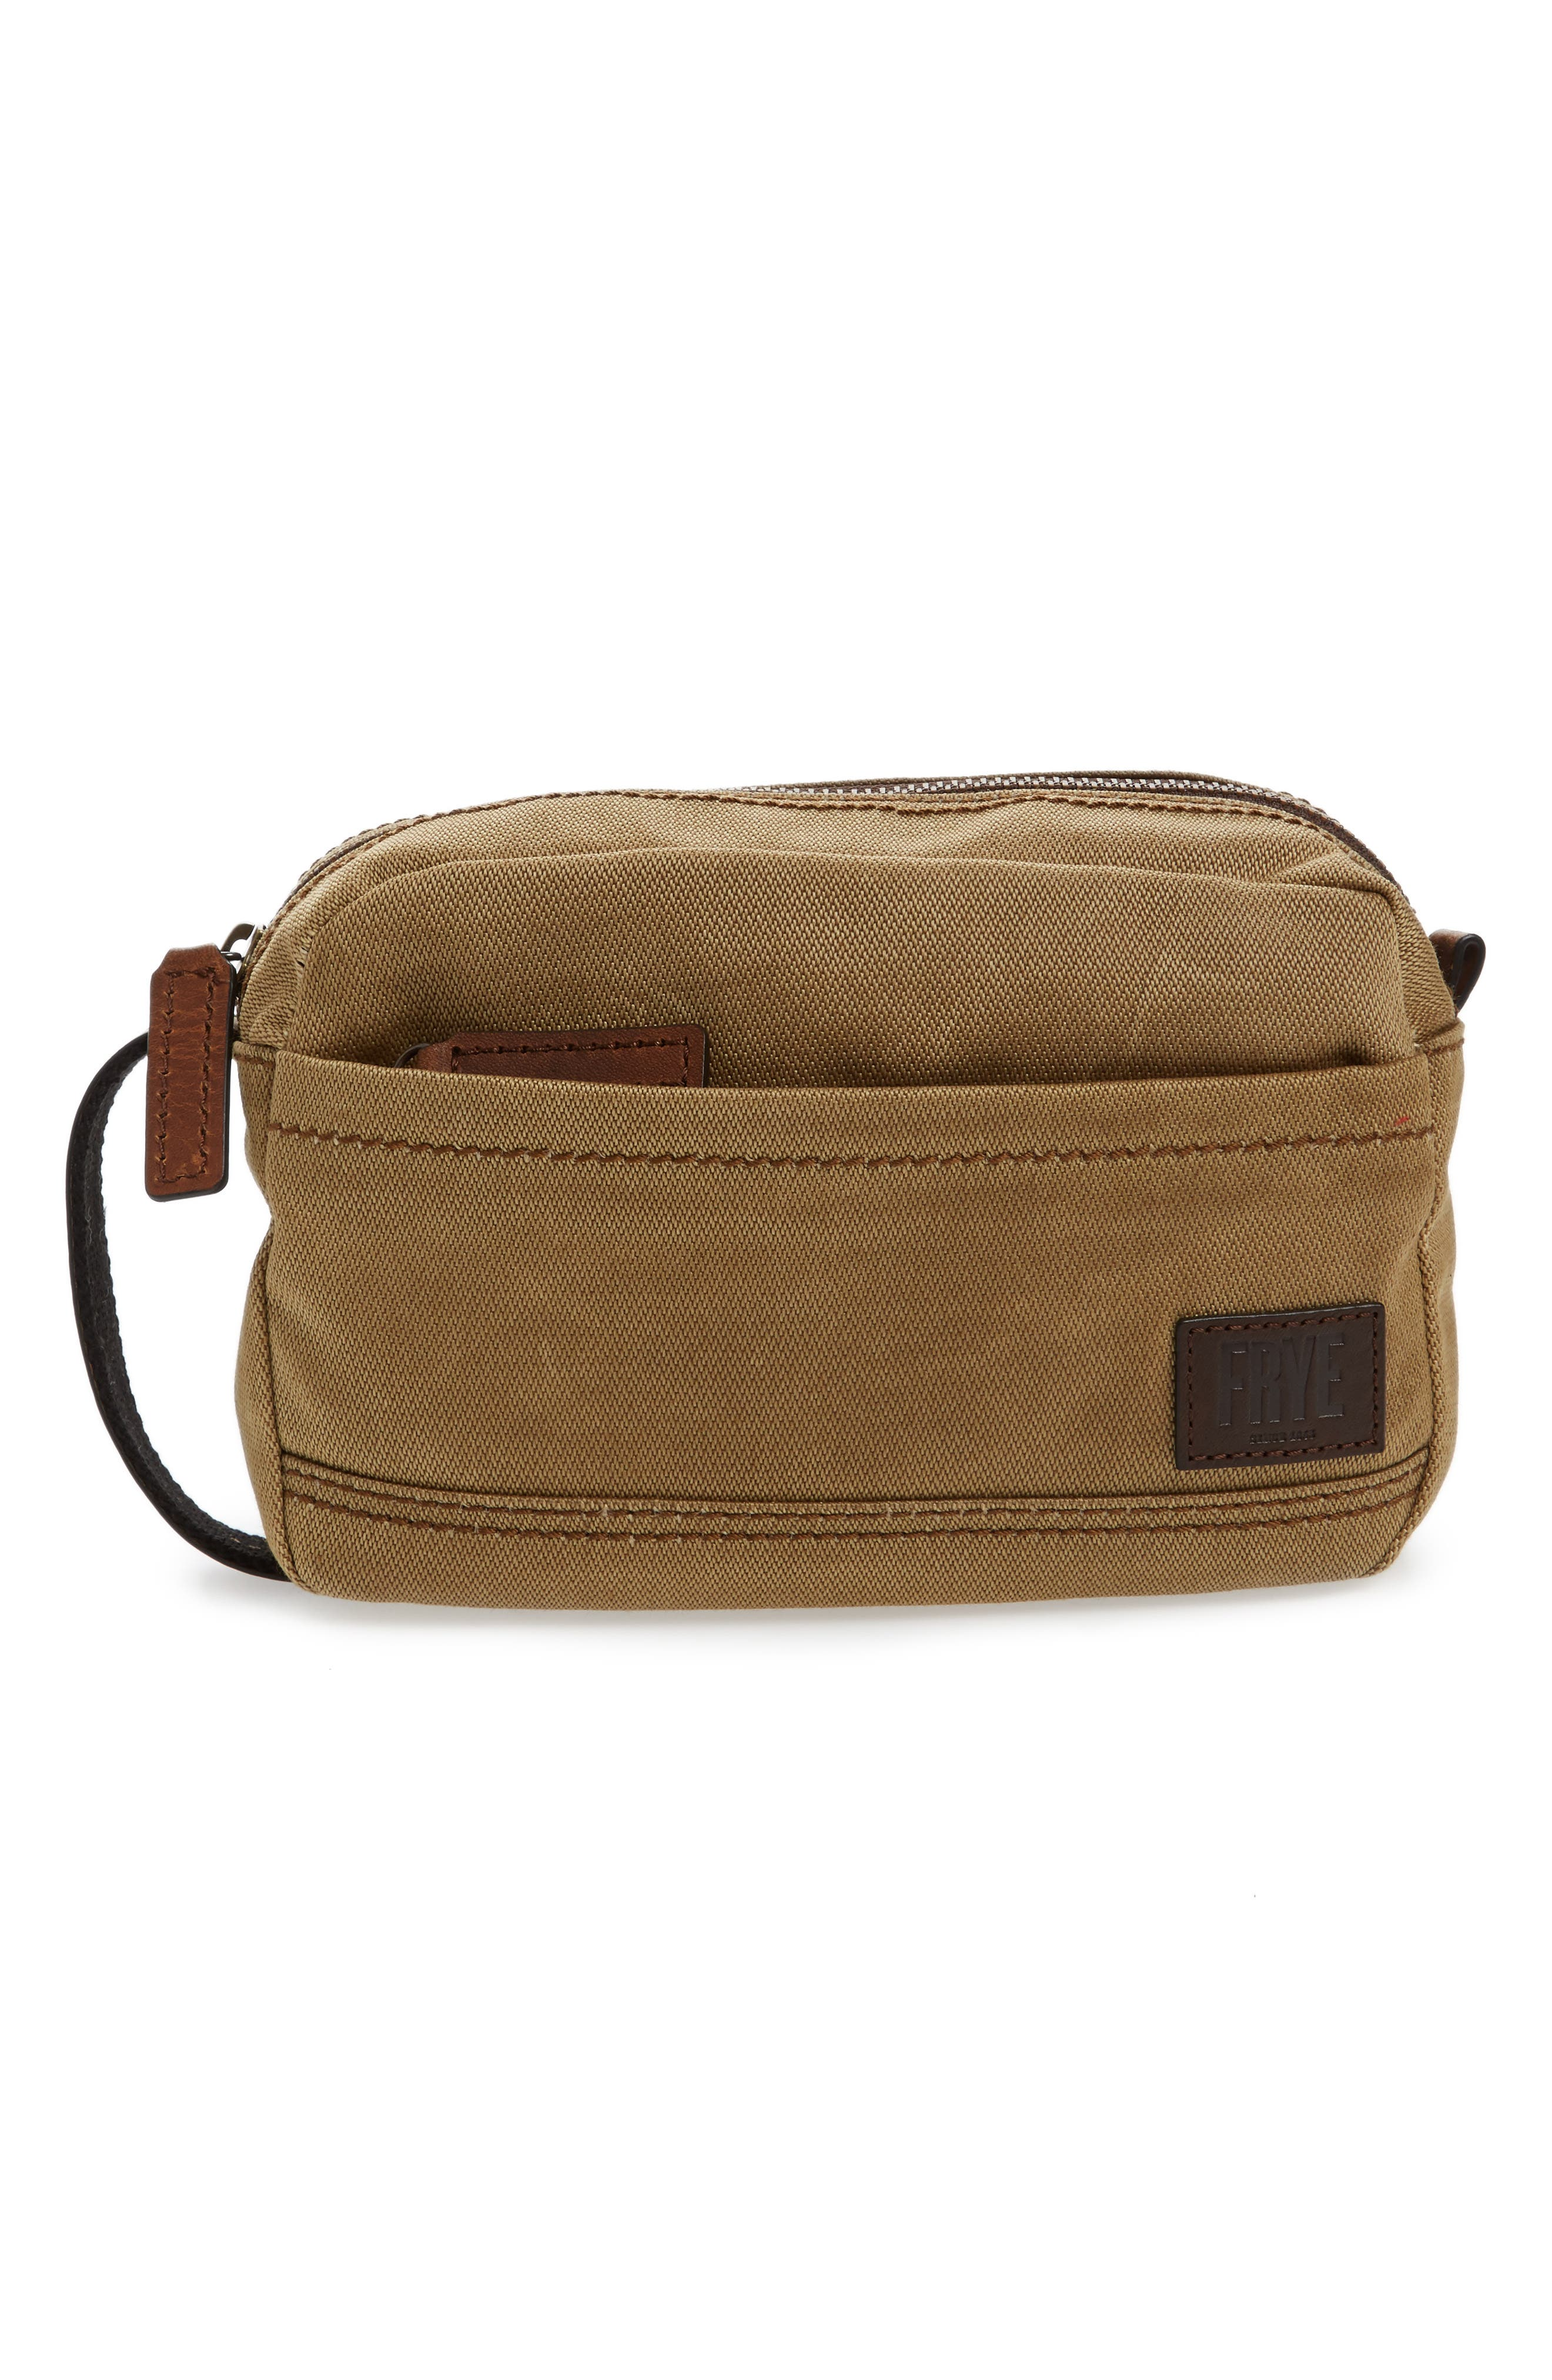 Carter Dopp Kit,                             Main thumbnail 1, color,                             231